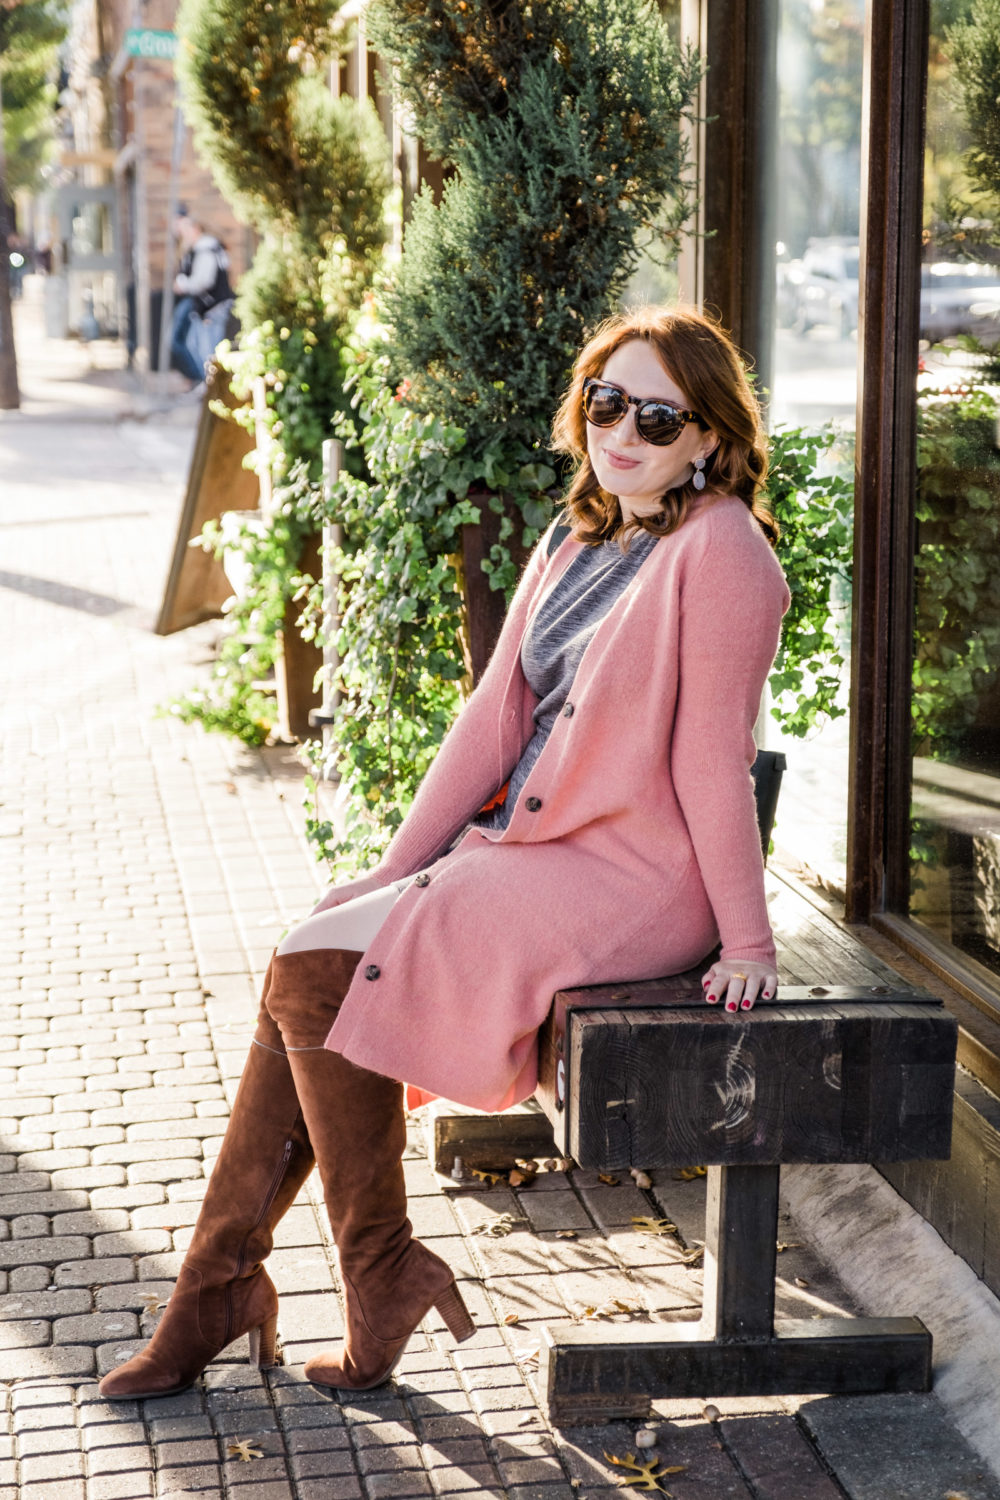 Cozy Coatigan | How to Style a Long Sweater | Pink Sweater Coat | Pink Cardigan via fashion blogger Glitter & Spice